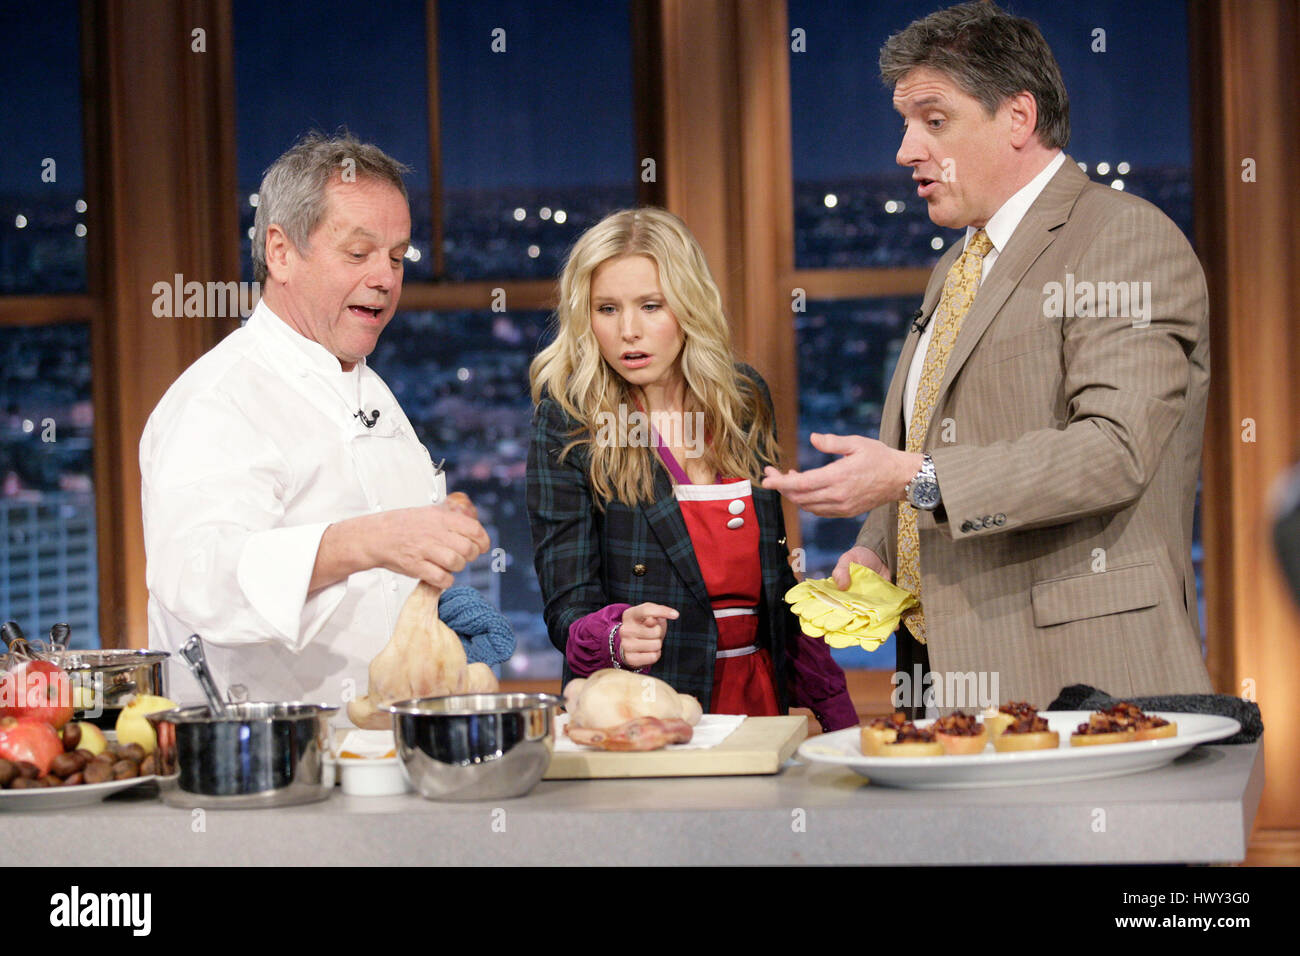 Chef Wolfgang Puck, left, holds a duck head, as actress